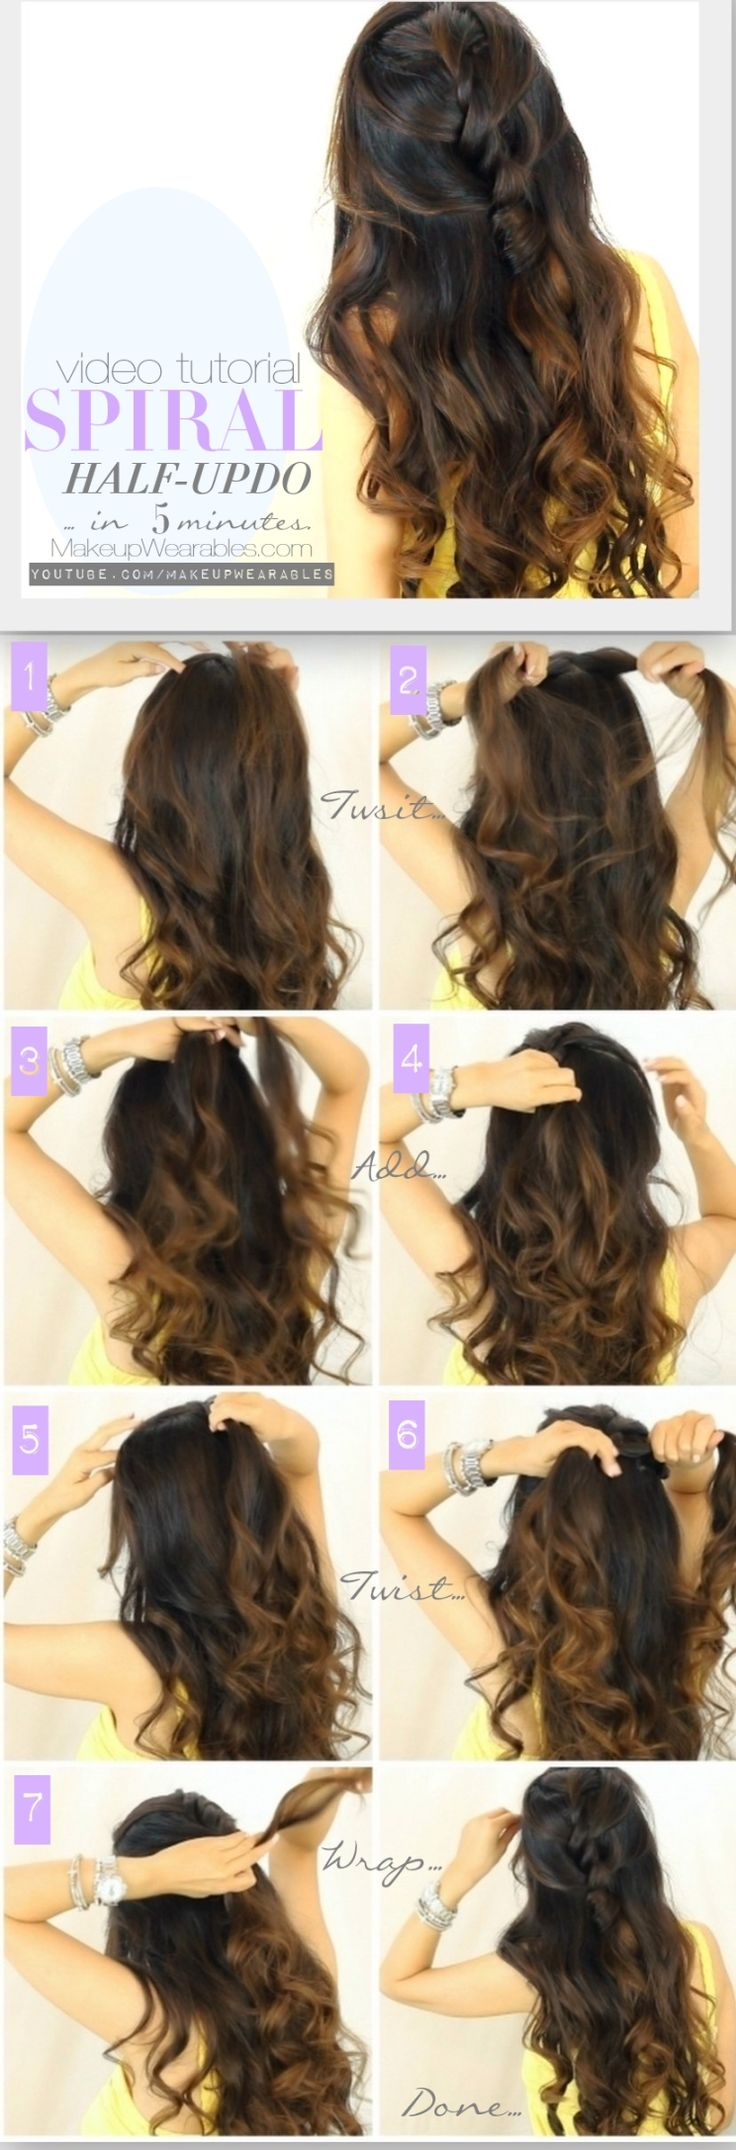 5 Minute Hairstyles For Girls 31 Best Images About Cute School Uniforms On Pinterest Bags